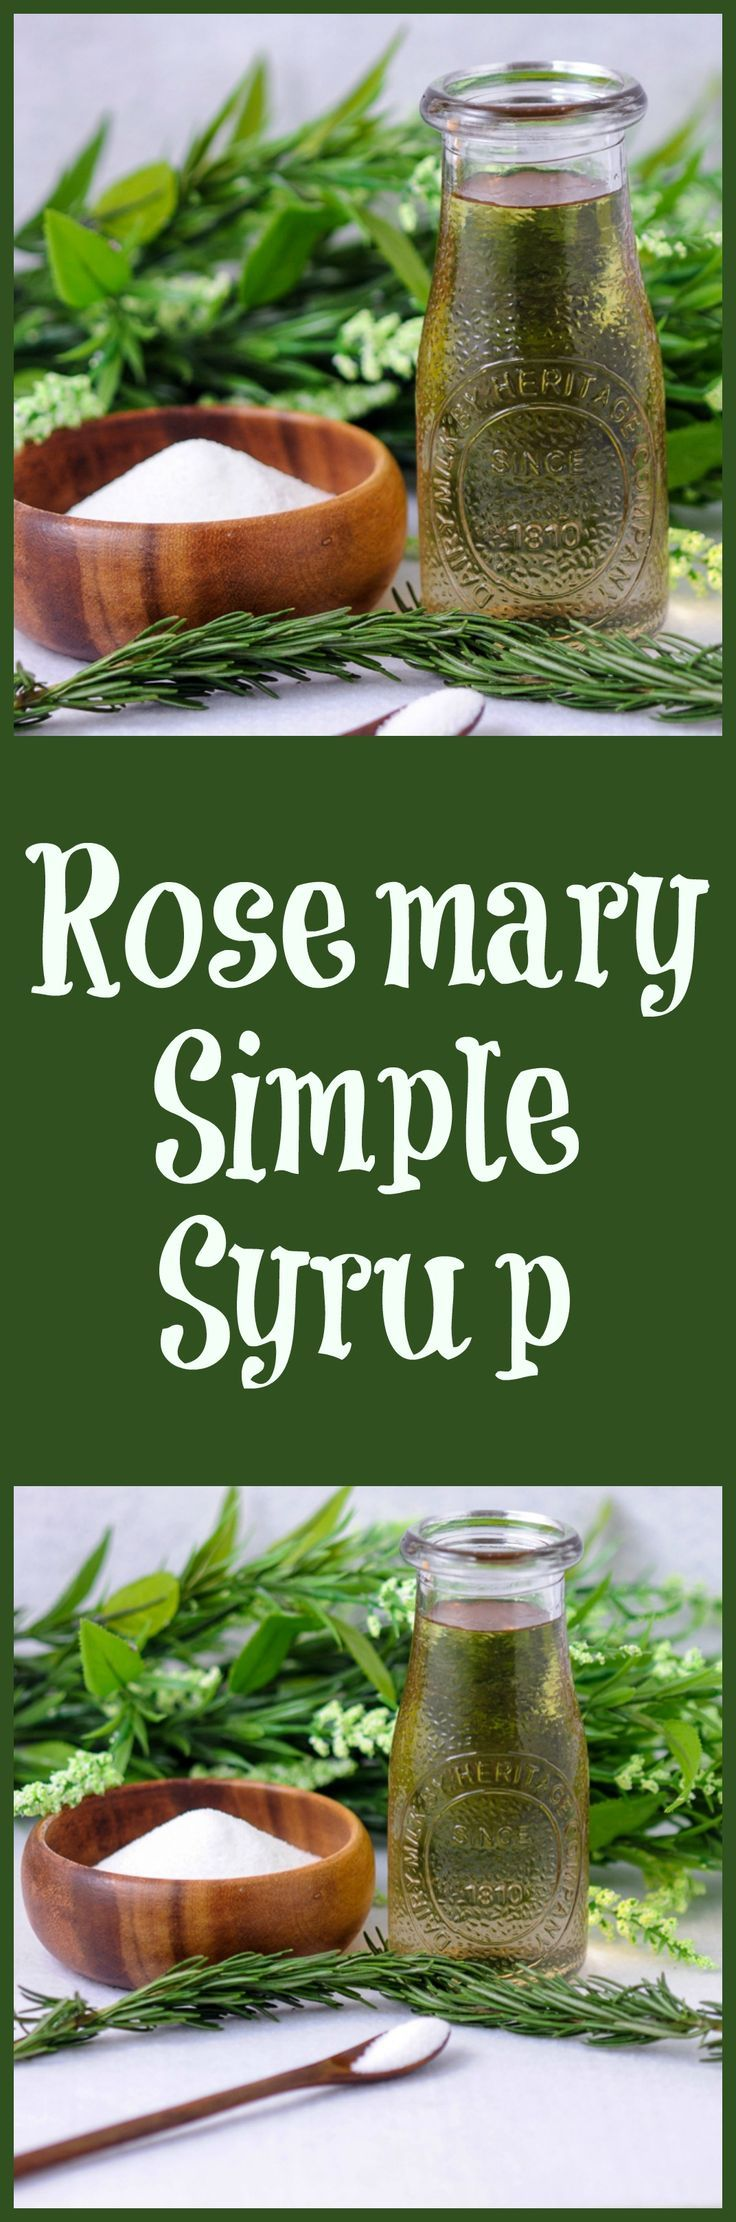 Rosemary simple syrup for cocktails, tea, mocktails. Sugar, rosemary and water!